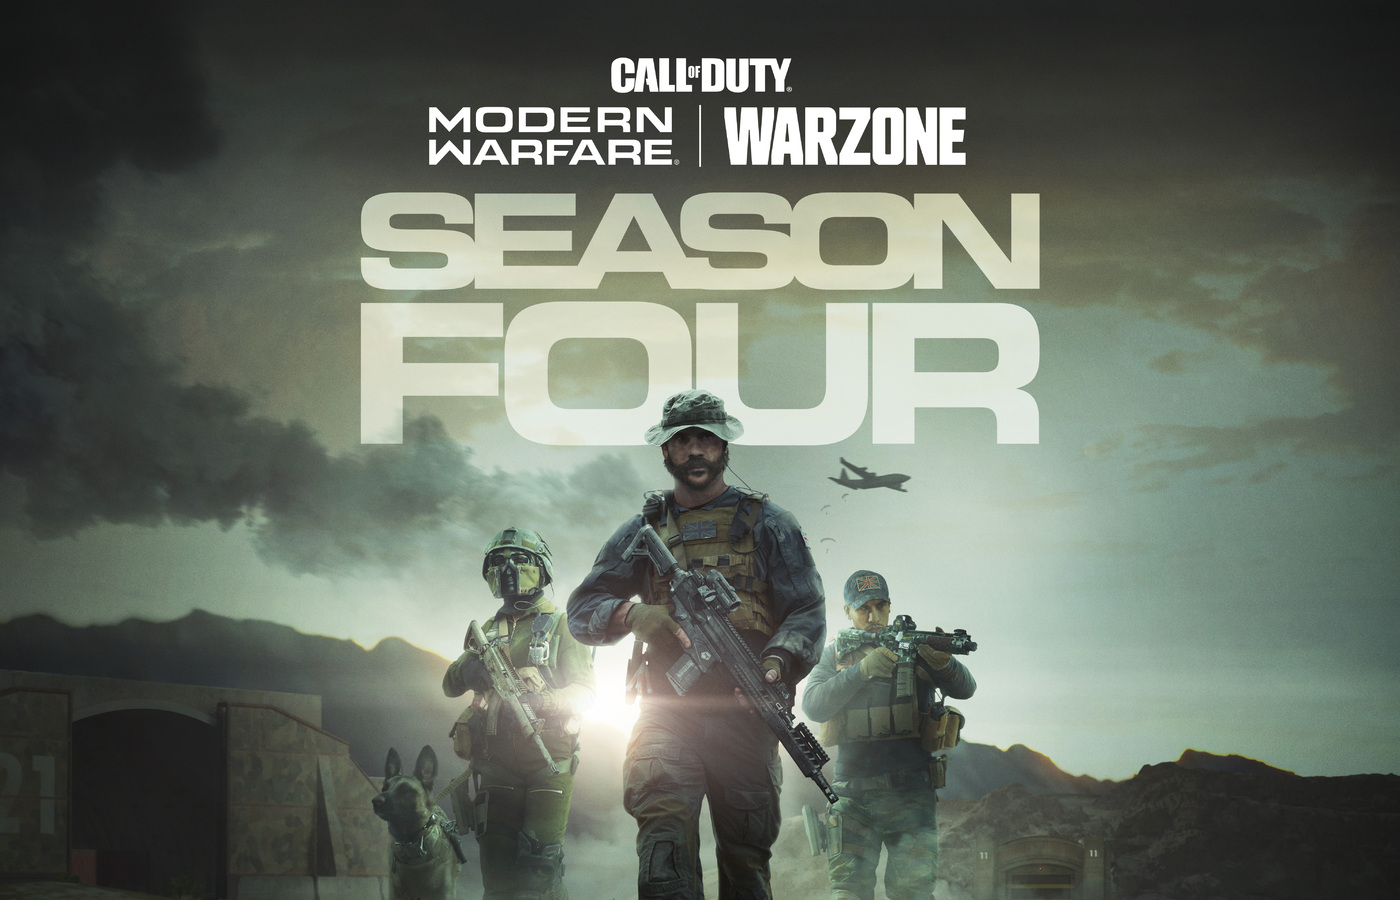 call-of-duty-modern-warfare-season-4-gm.jpg